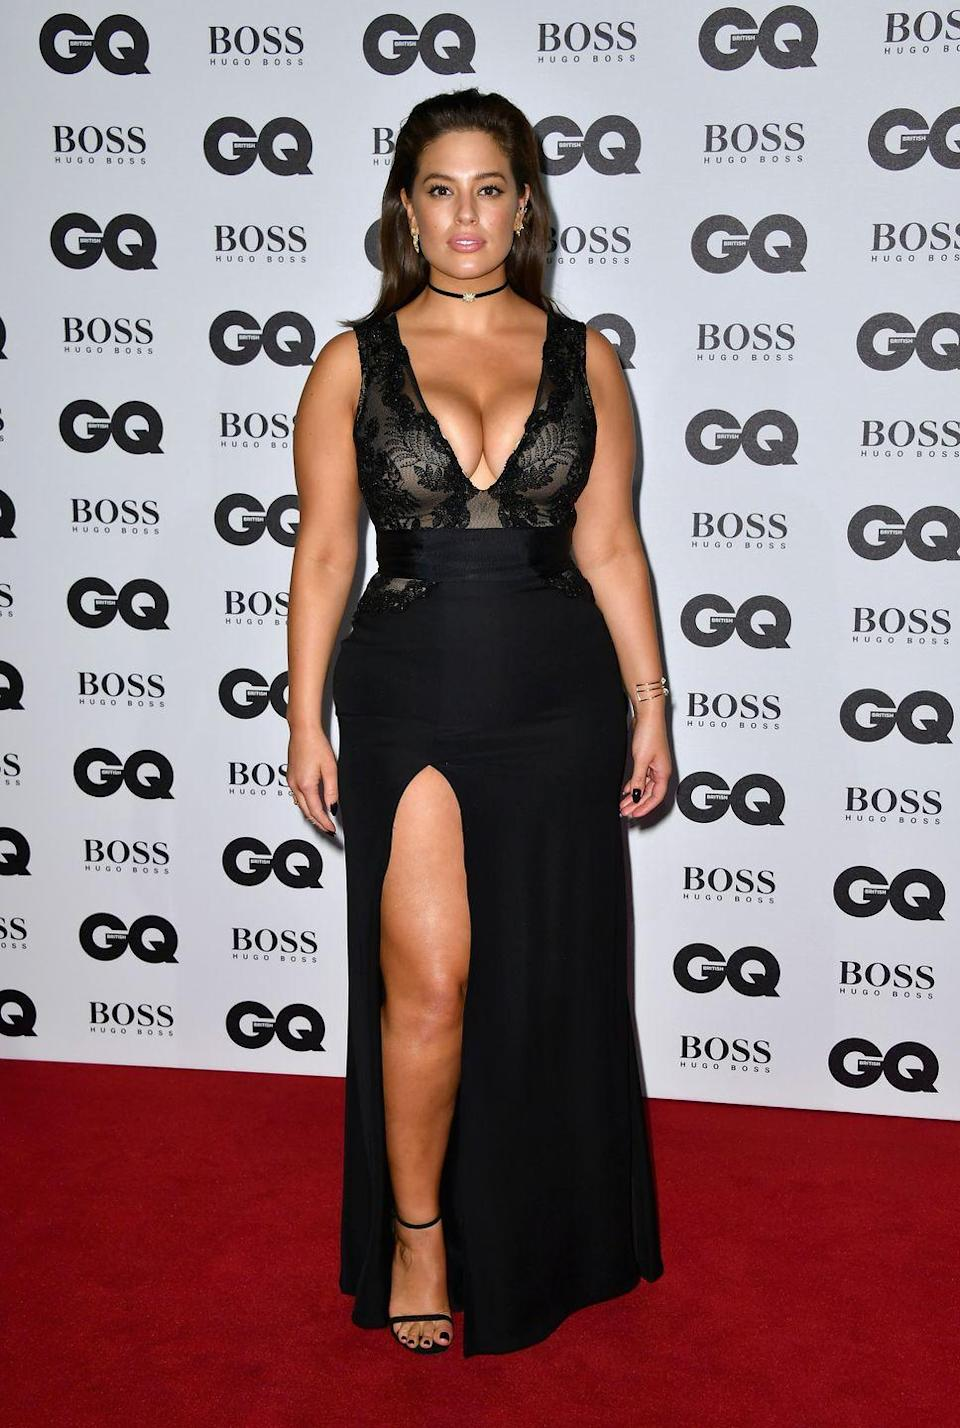 <p>GQ Men of the Year Awards, 2016: That split situation is really working for her.</p>